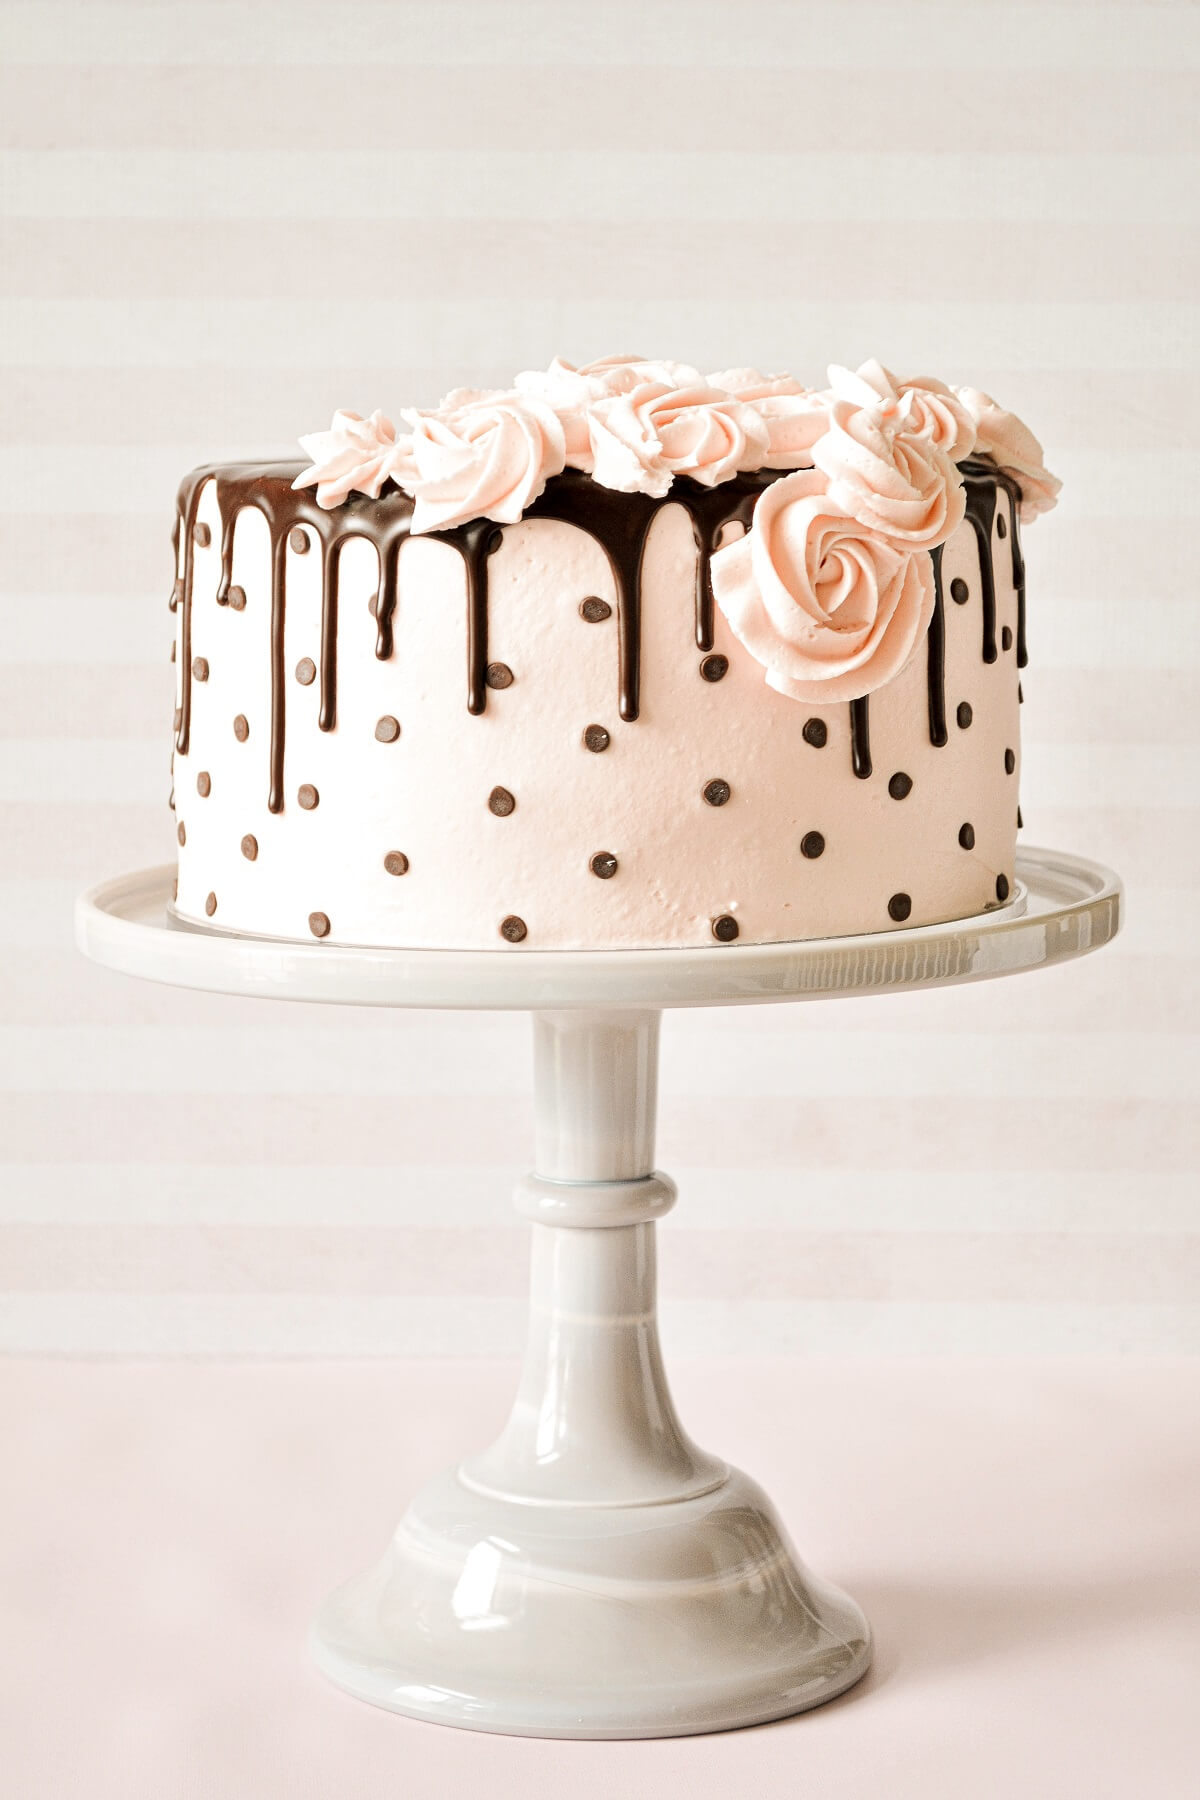 A polkadot drip cake with buttercream roses and chocolate ganache drip.